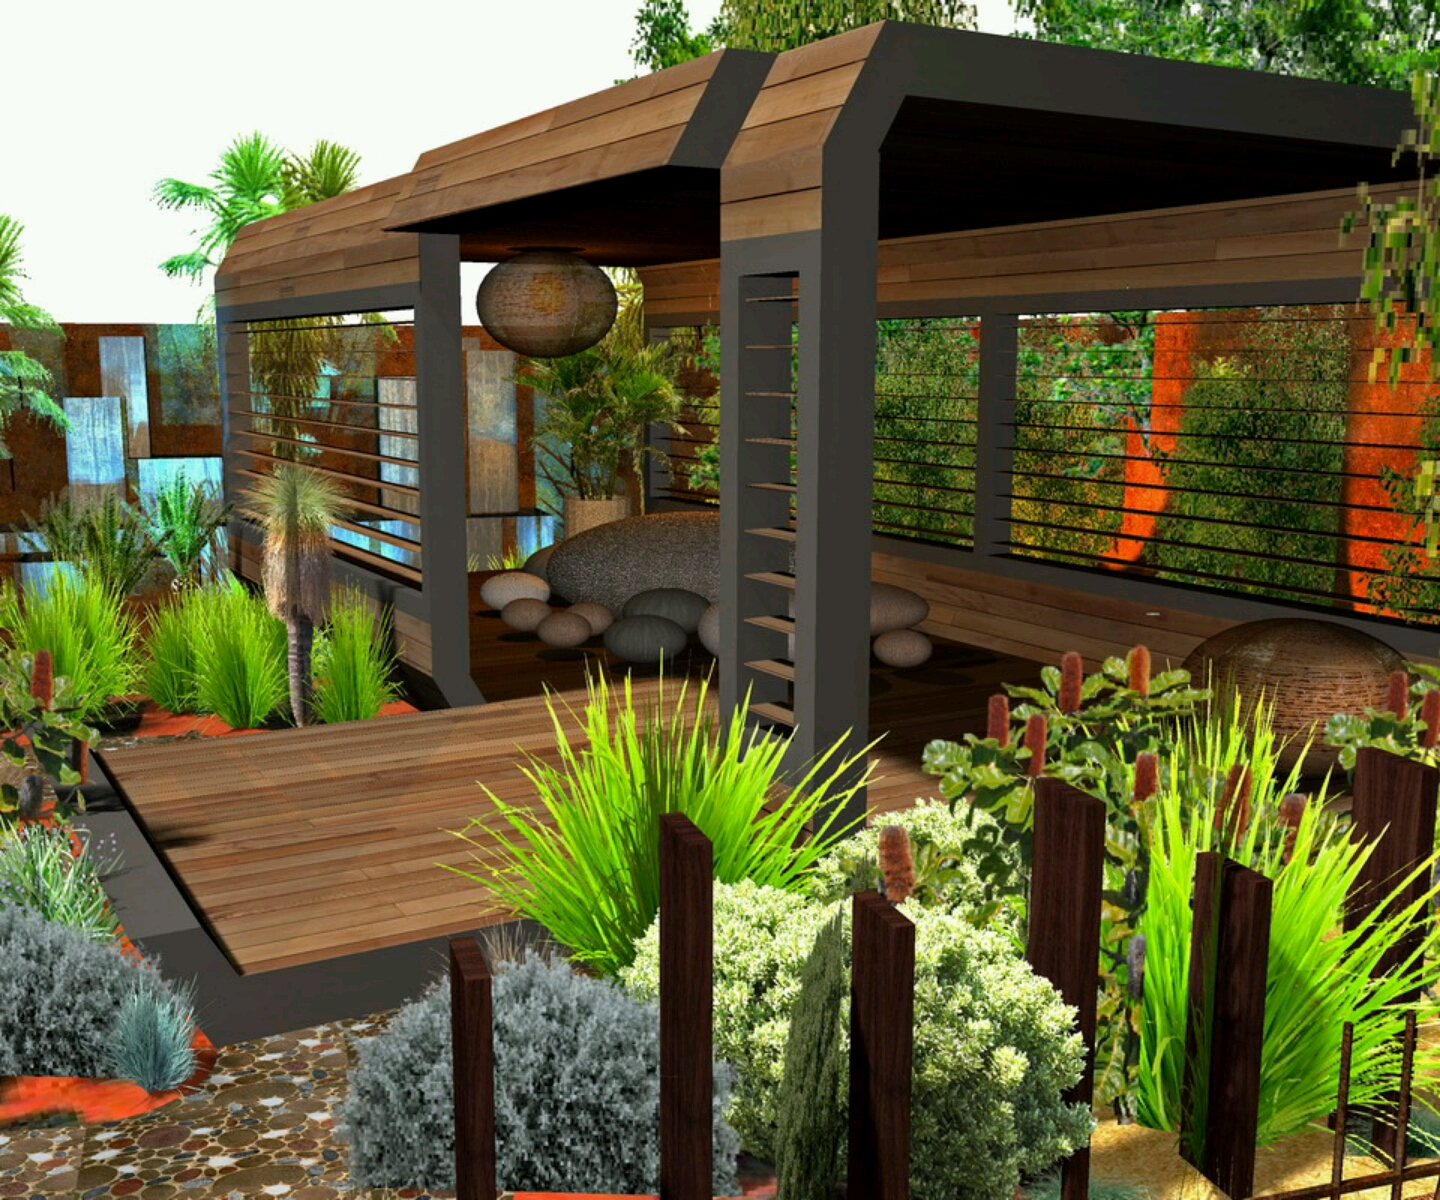 New home designs latest modern homes garden designs ideas for New house design ideas